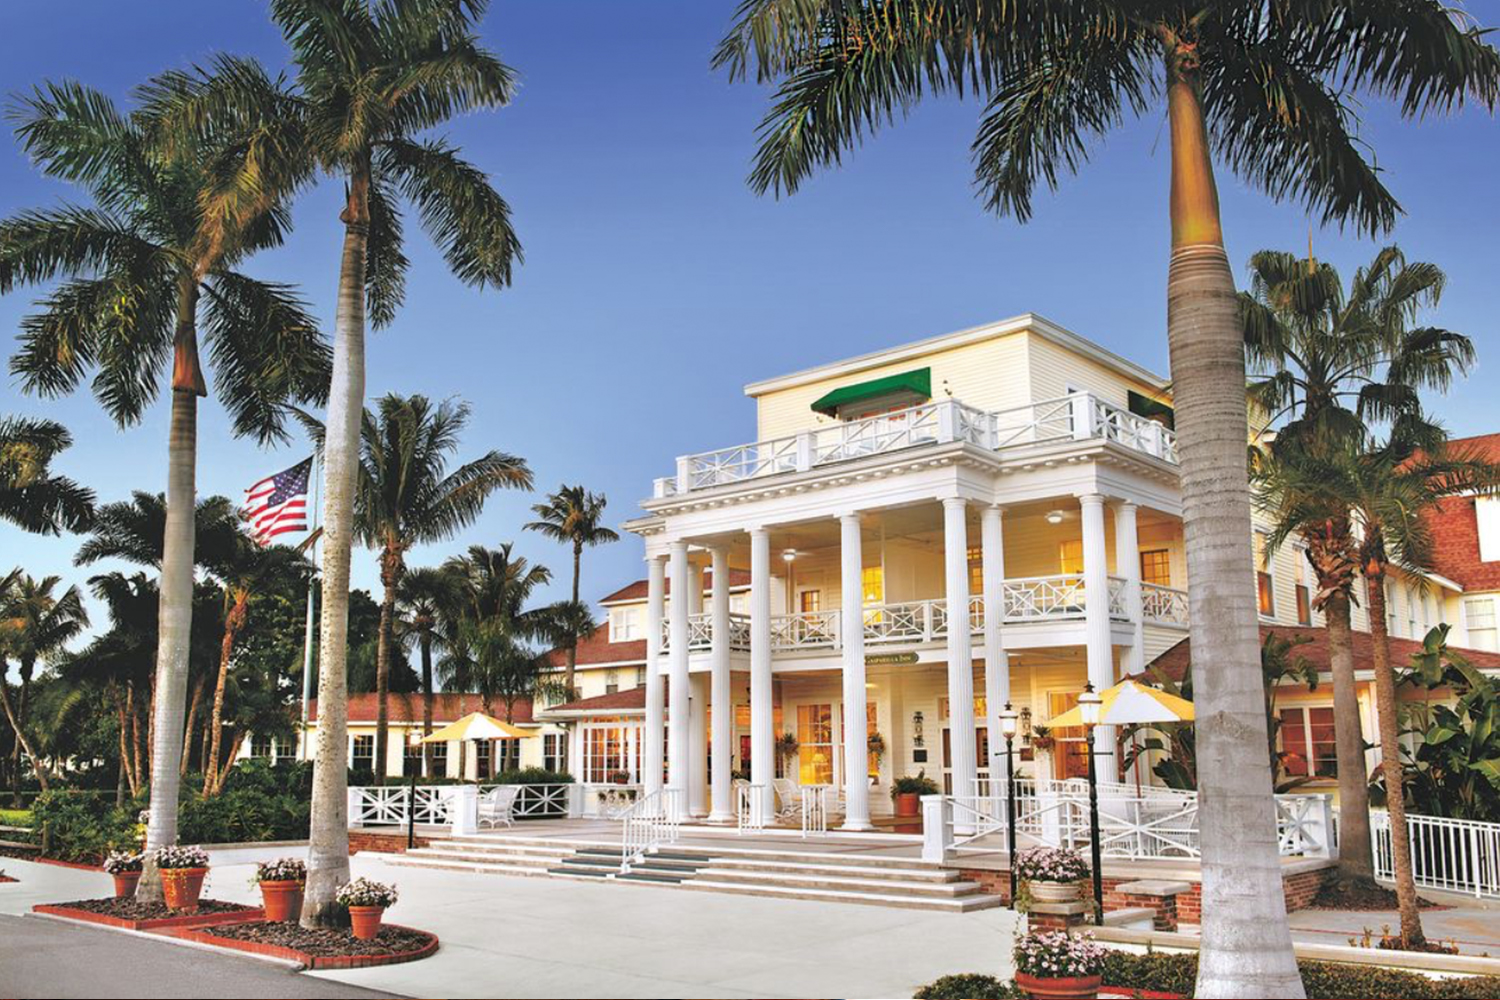 The Gasparilla Inn